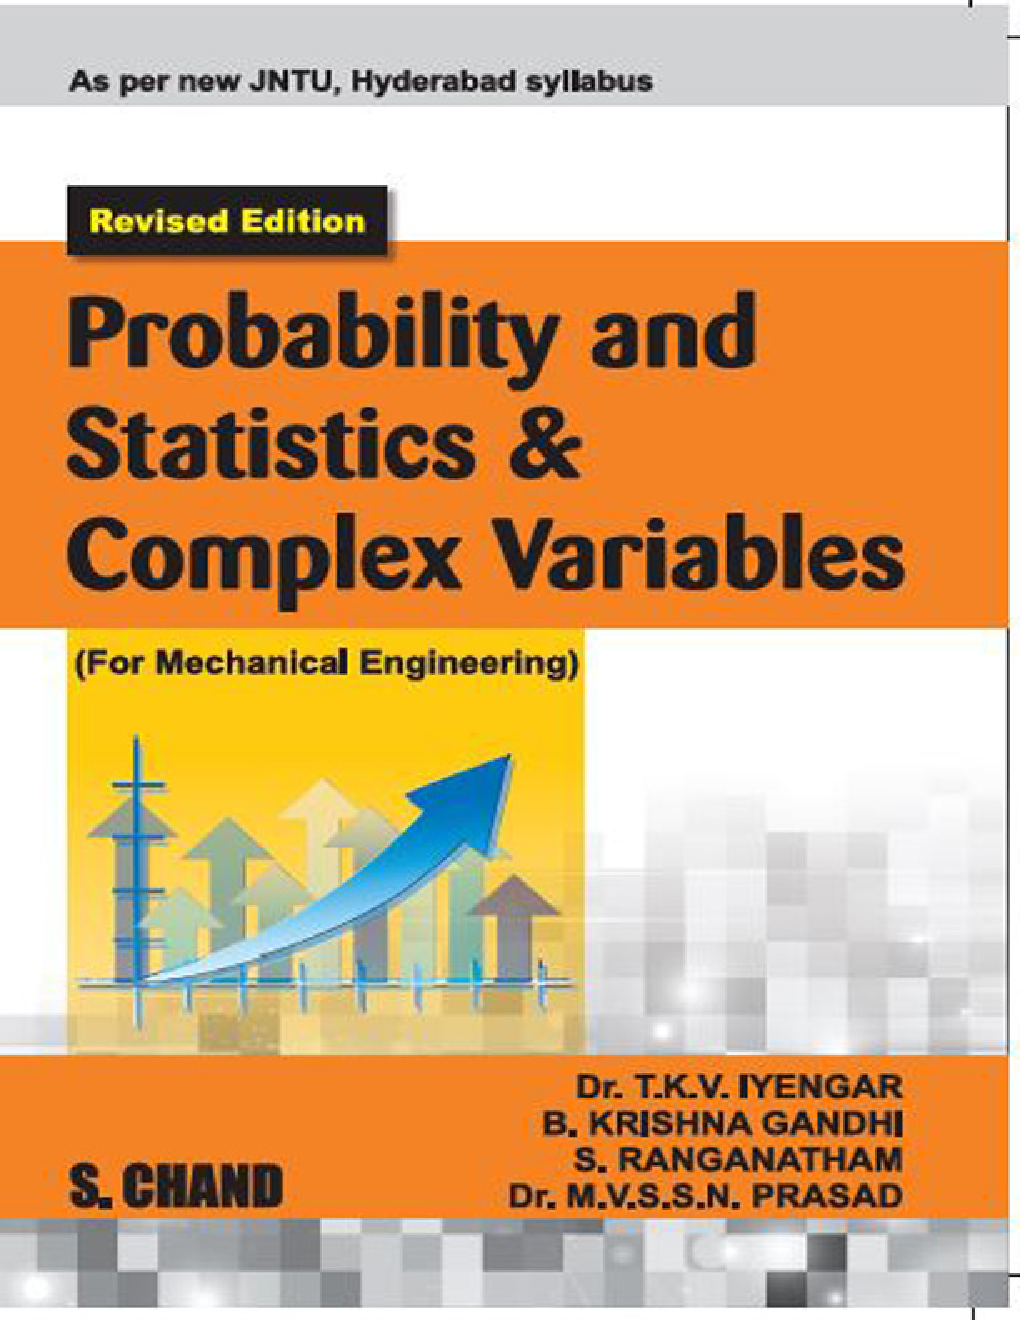 Probability and Statistics & Complex Variables                                                  - Page 1